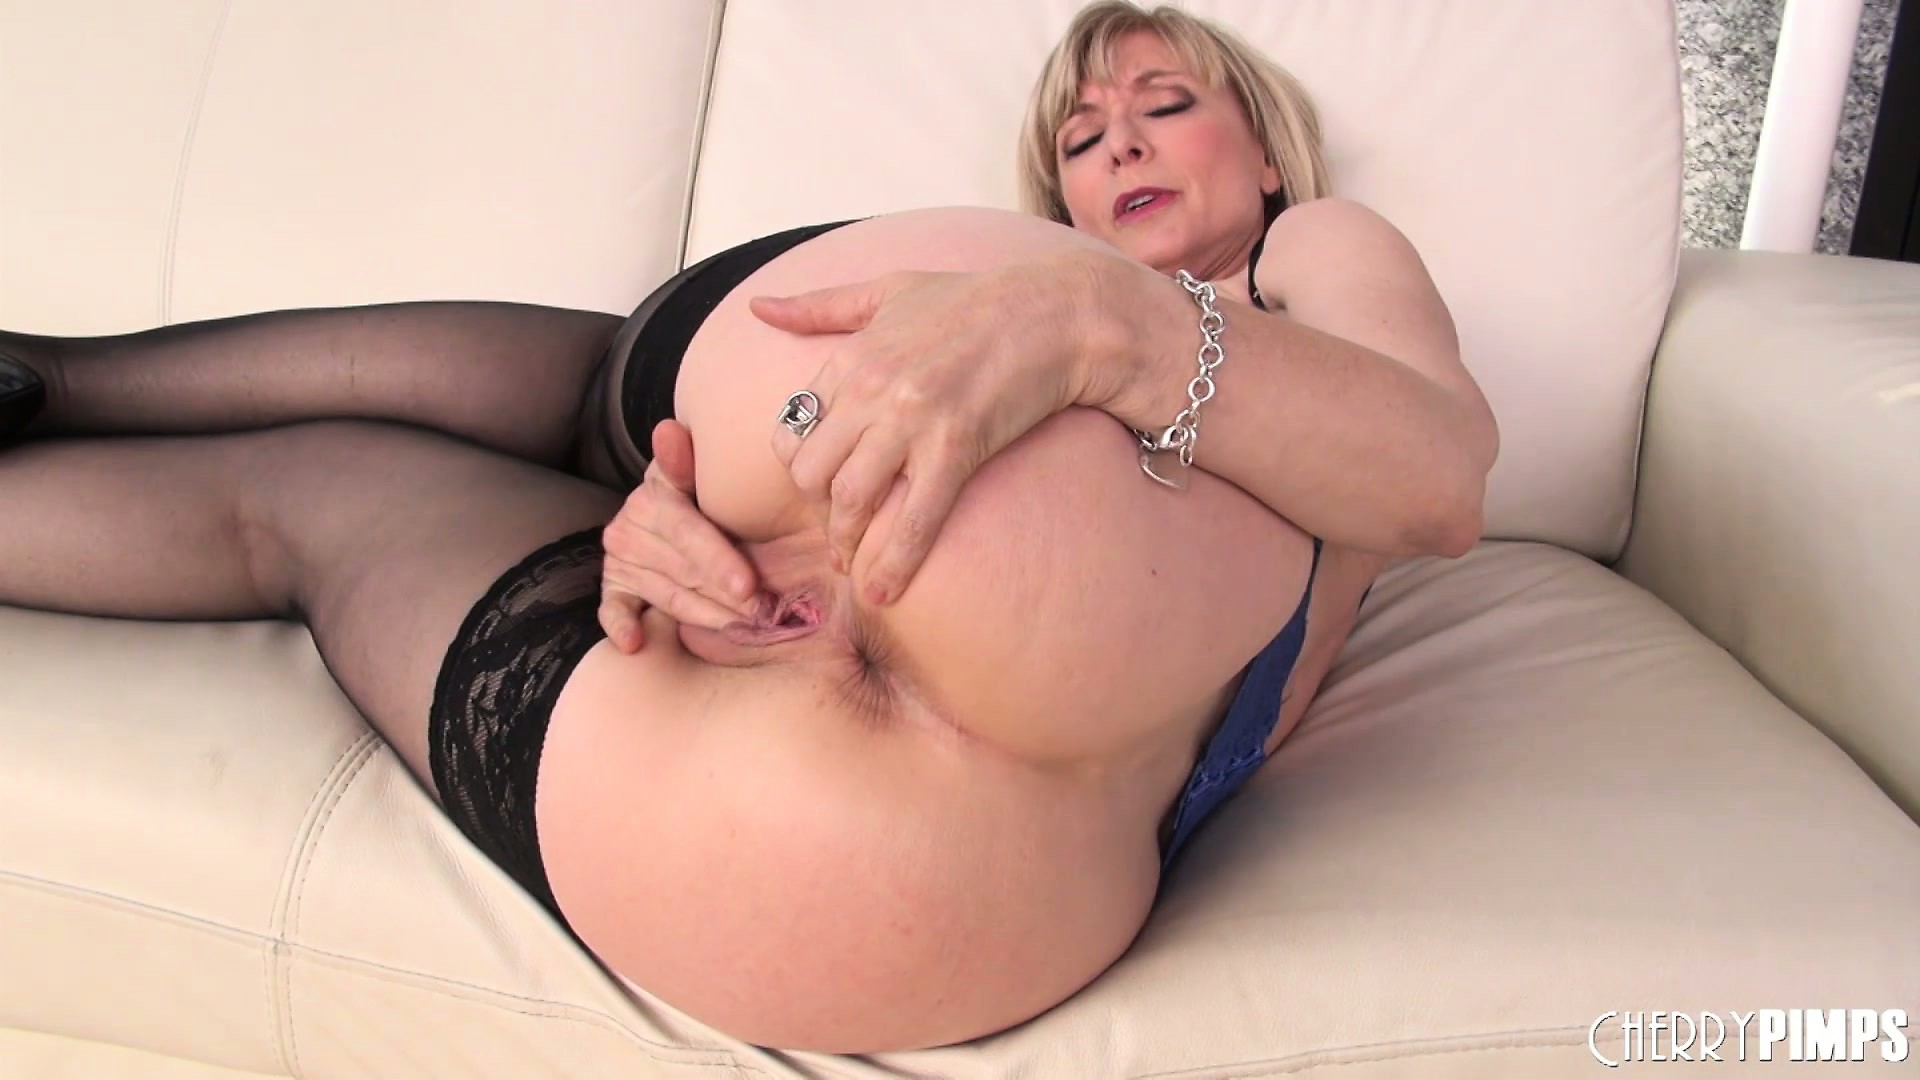 Hd mature porn fat old granny blowjob